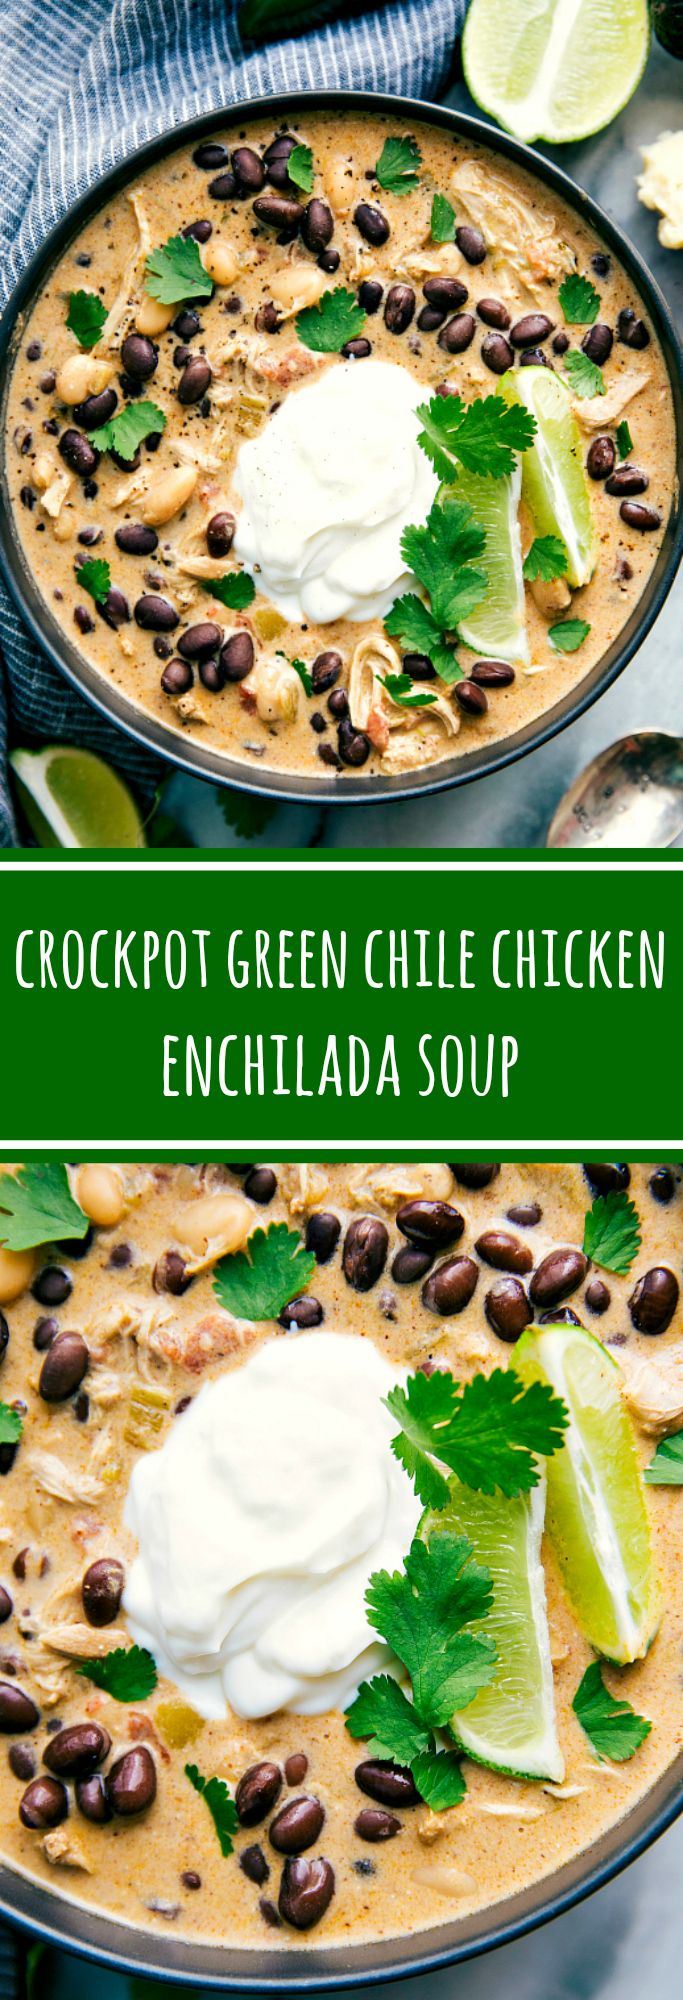 Crockpot Green Chile Chicken Enchilada Soup — your favorite green chile chicken enchiladas in a cream